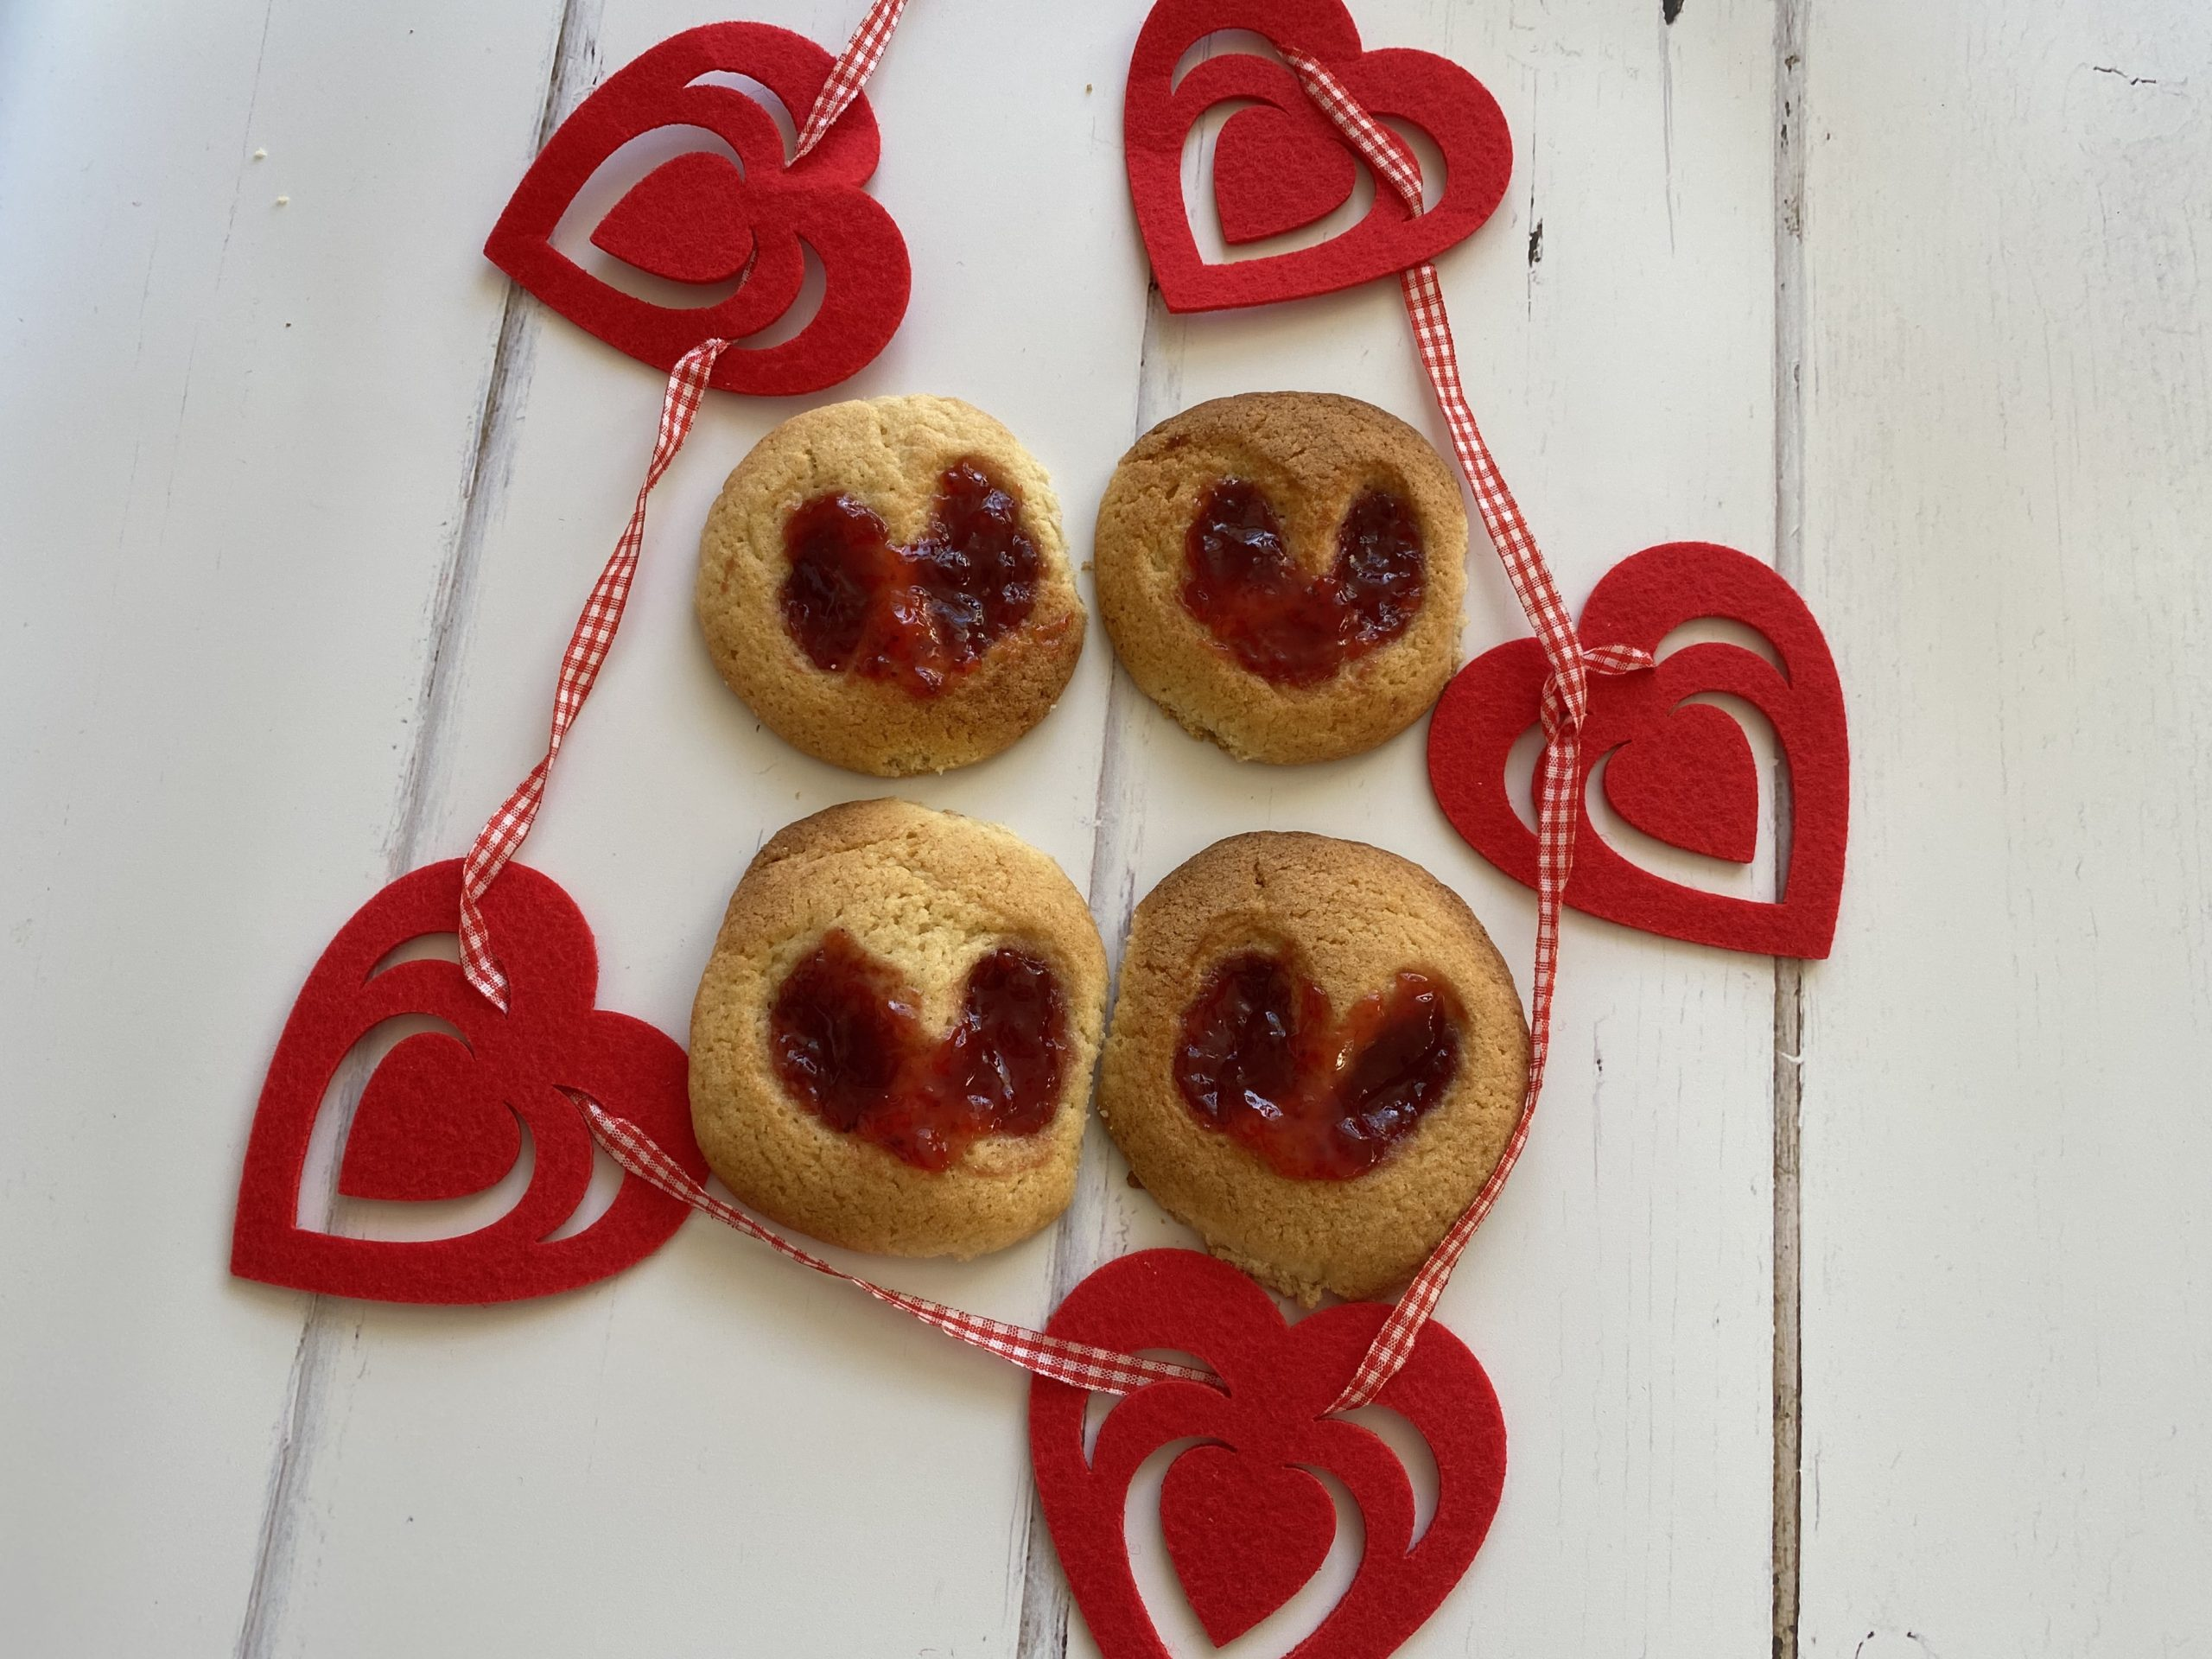 jam thumbprint cookies with hearts